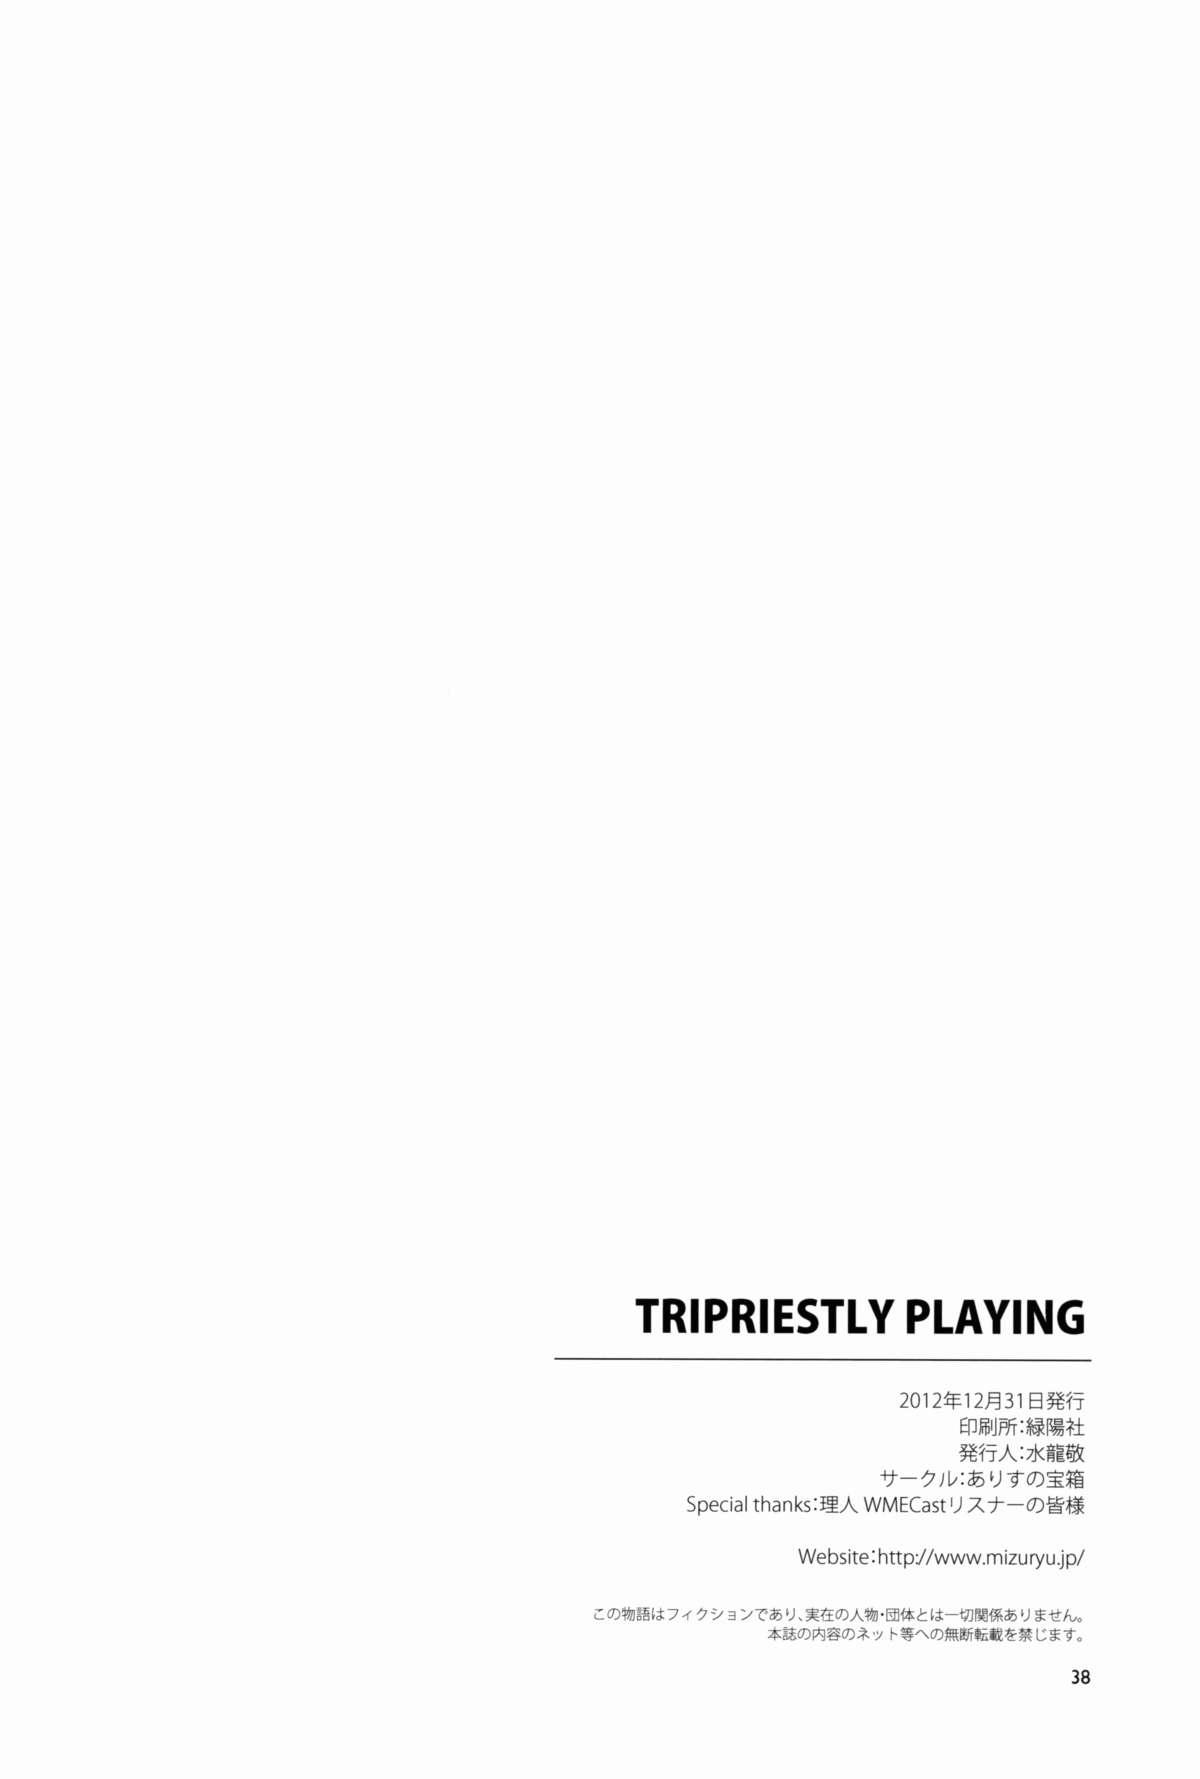 TRIPRIESTLY PLAYING 37